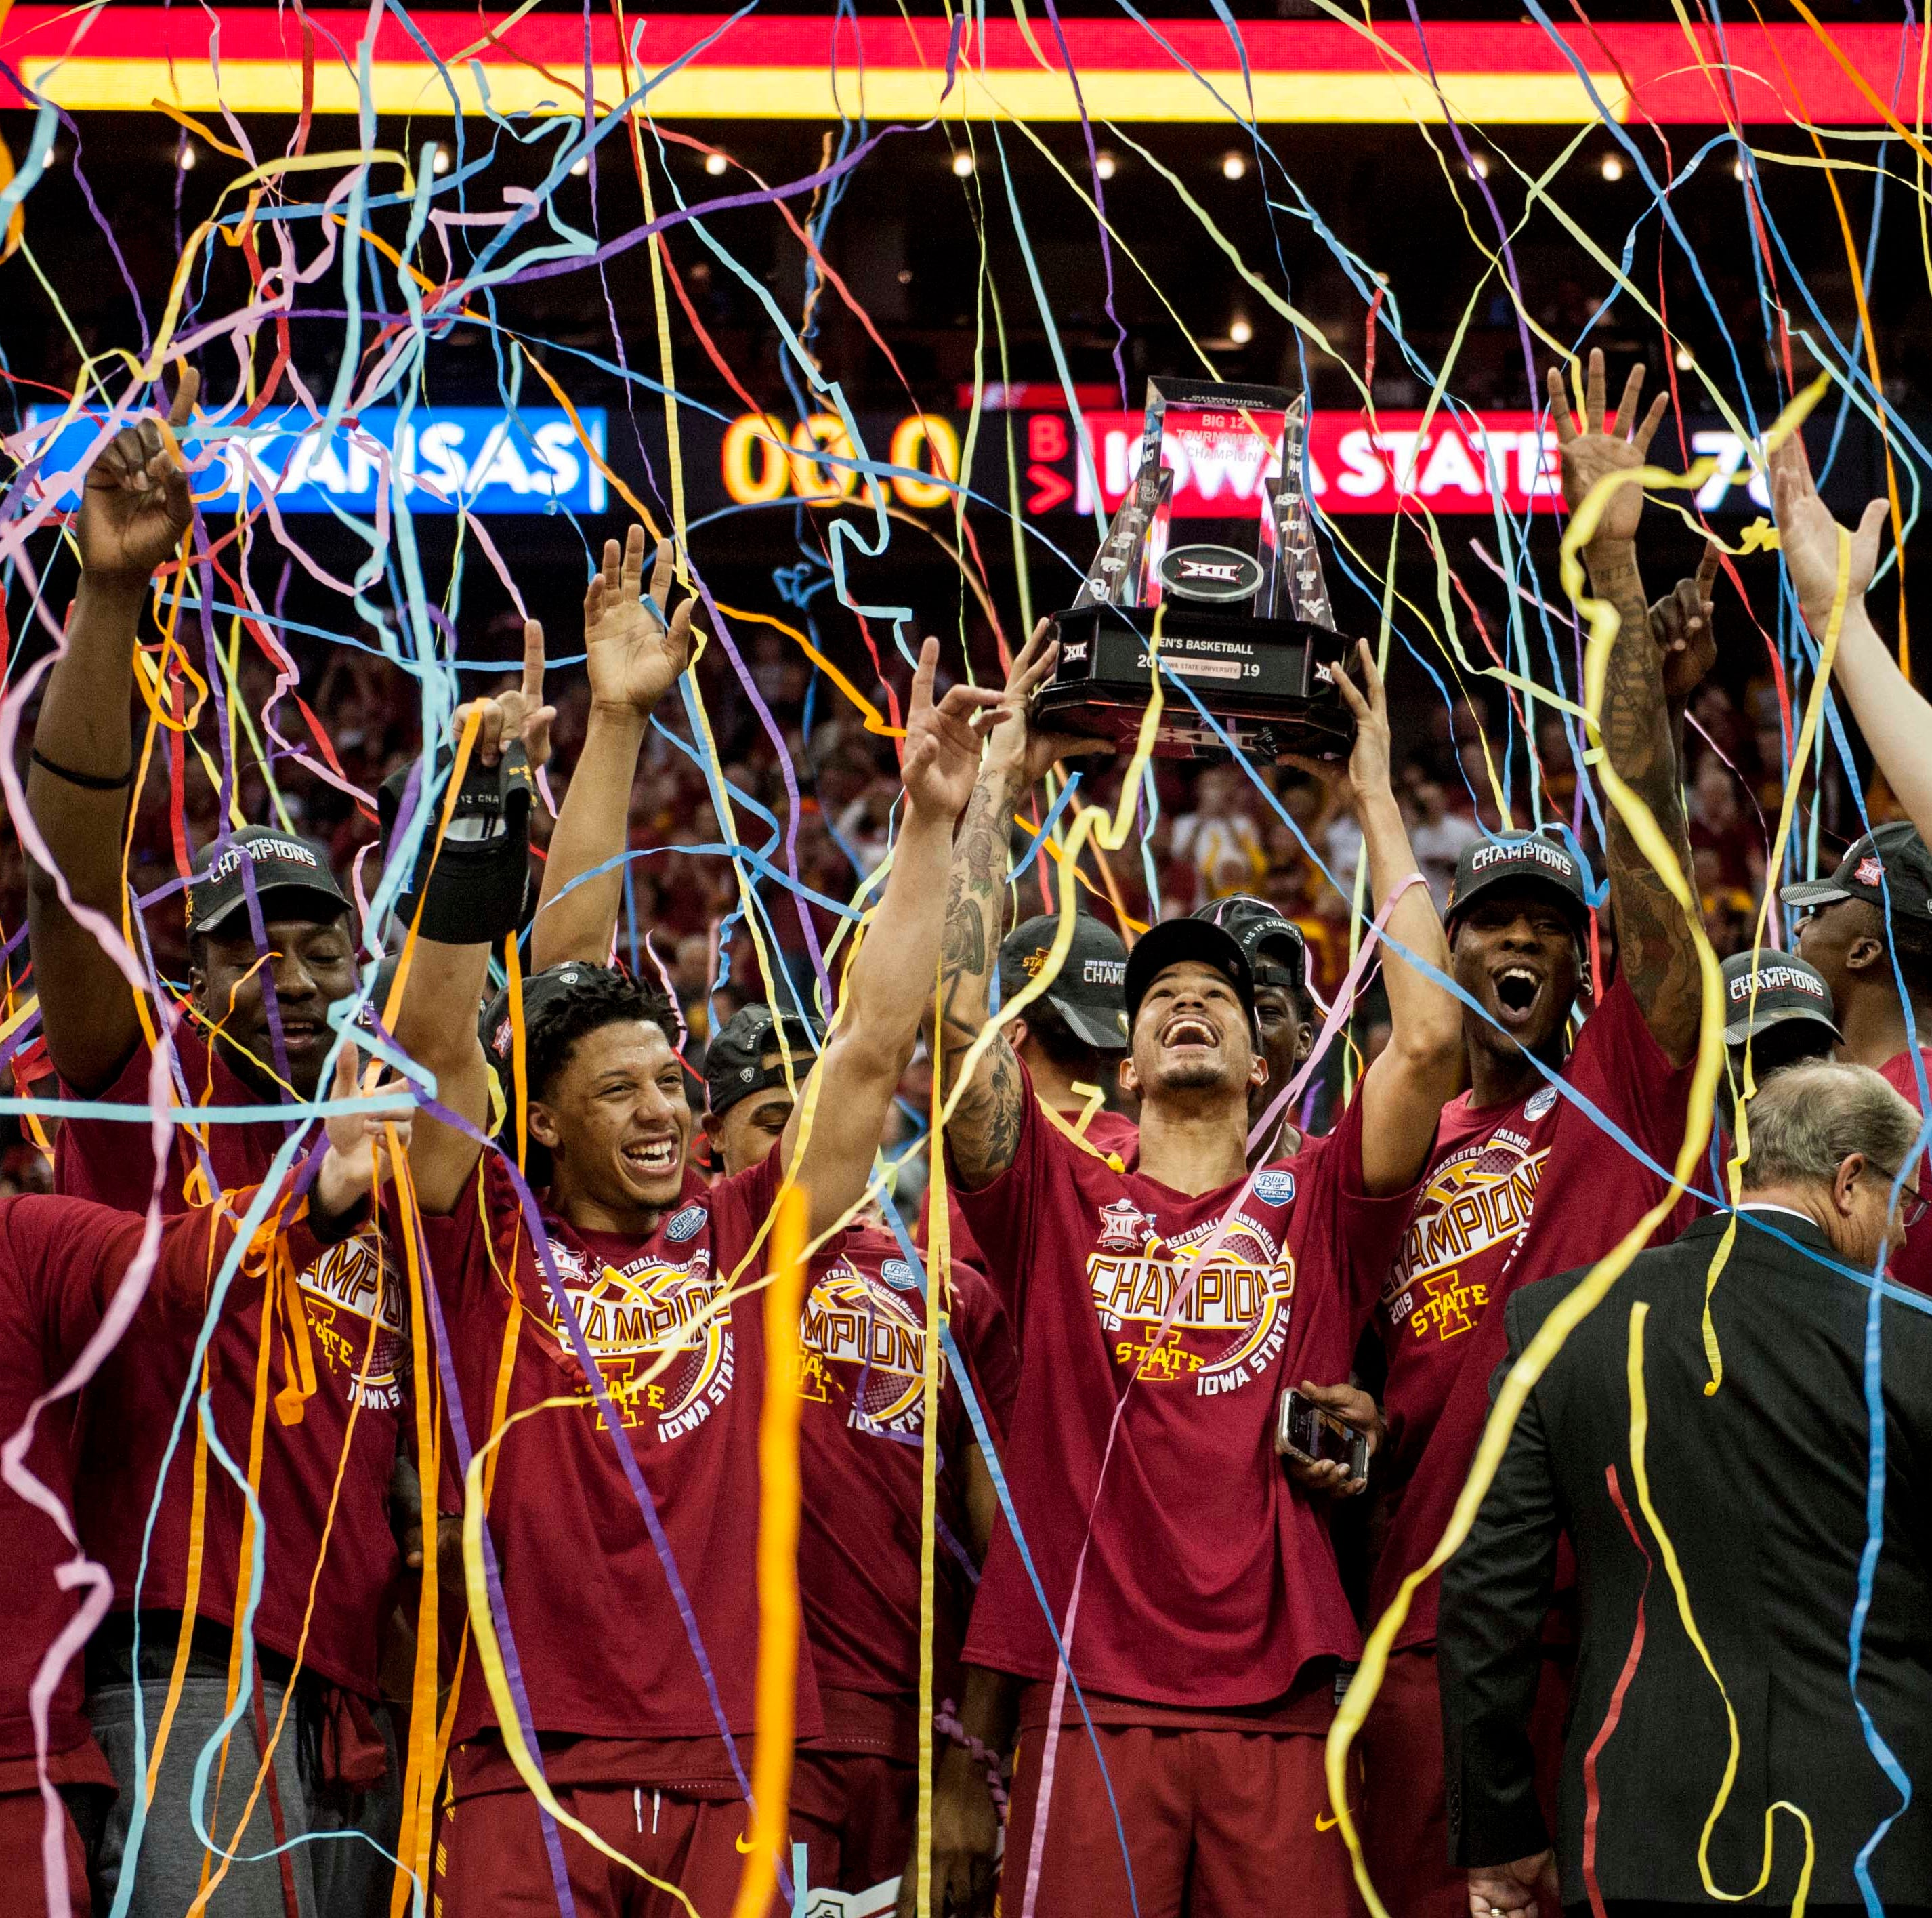 Peterson: Iowa State's message is clear. If this trend continues, NCAA opponents beware.